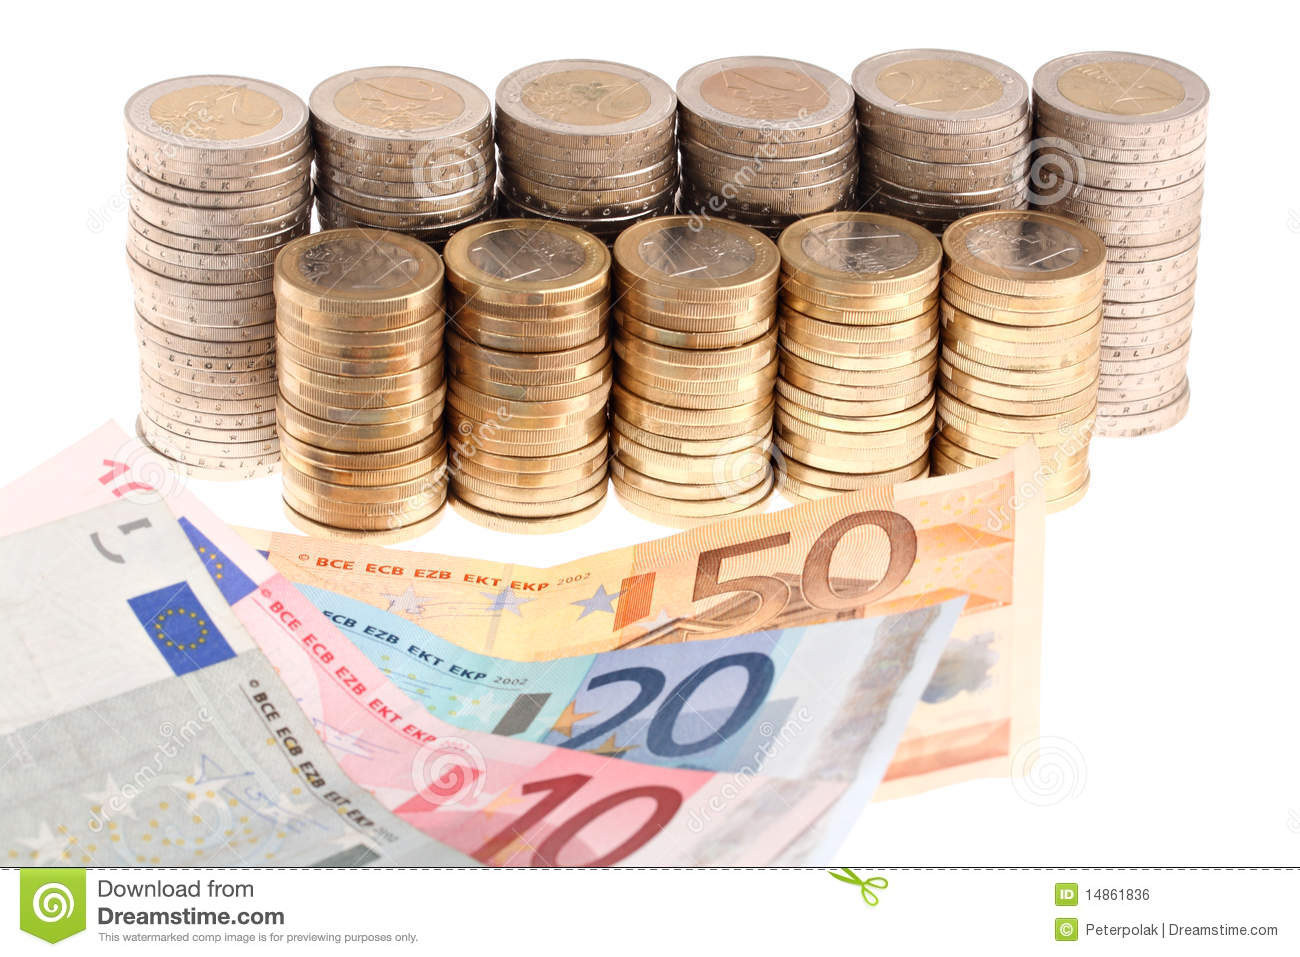 Euro banknotes and coins organized in columns